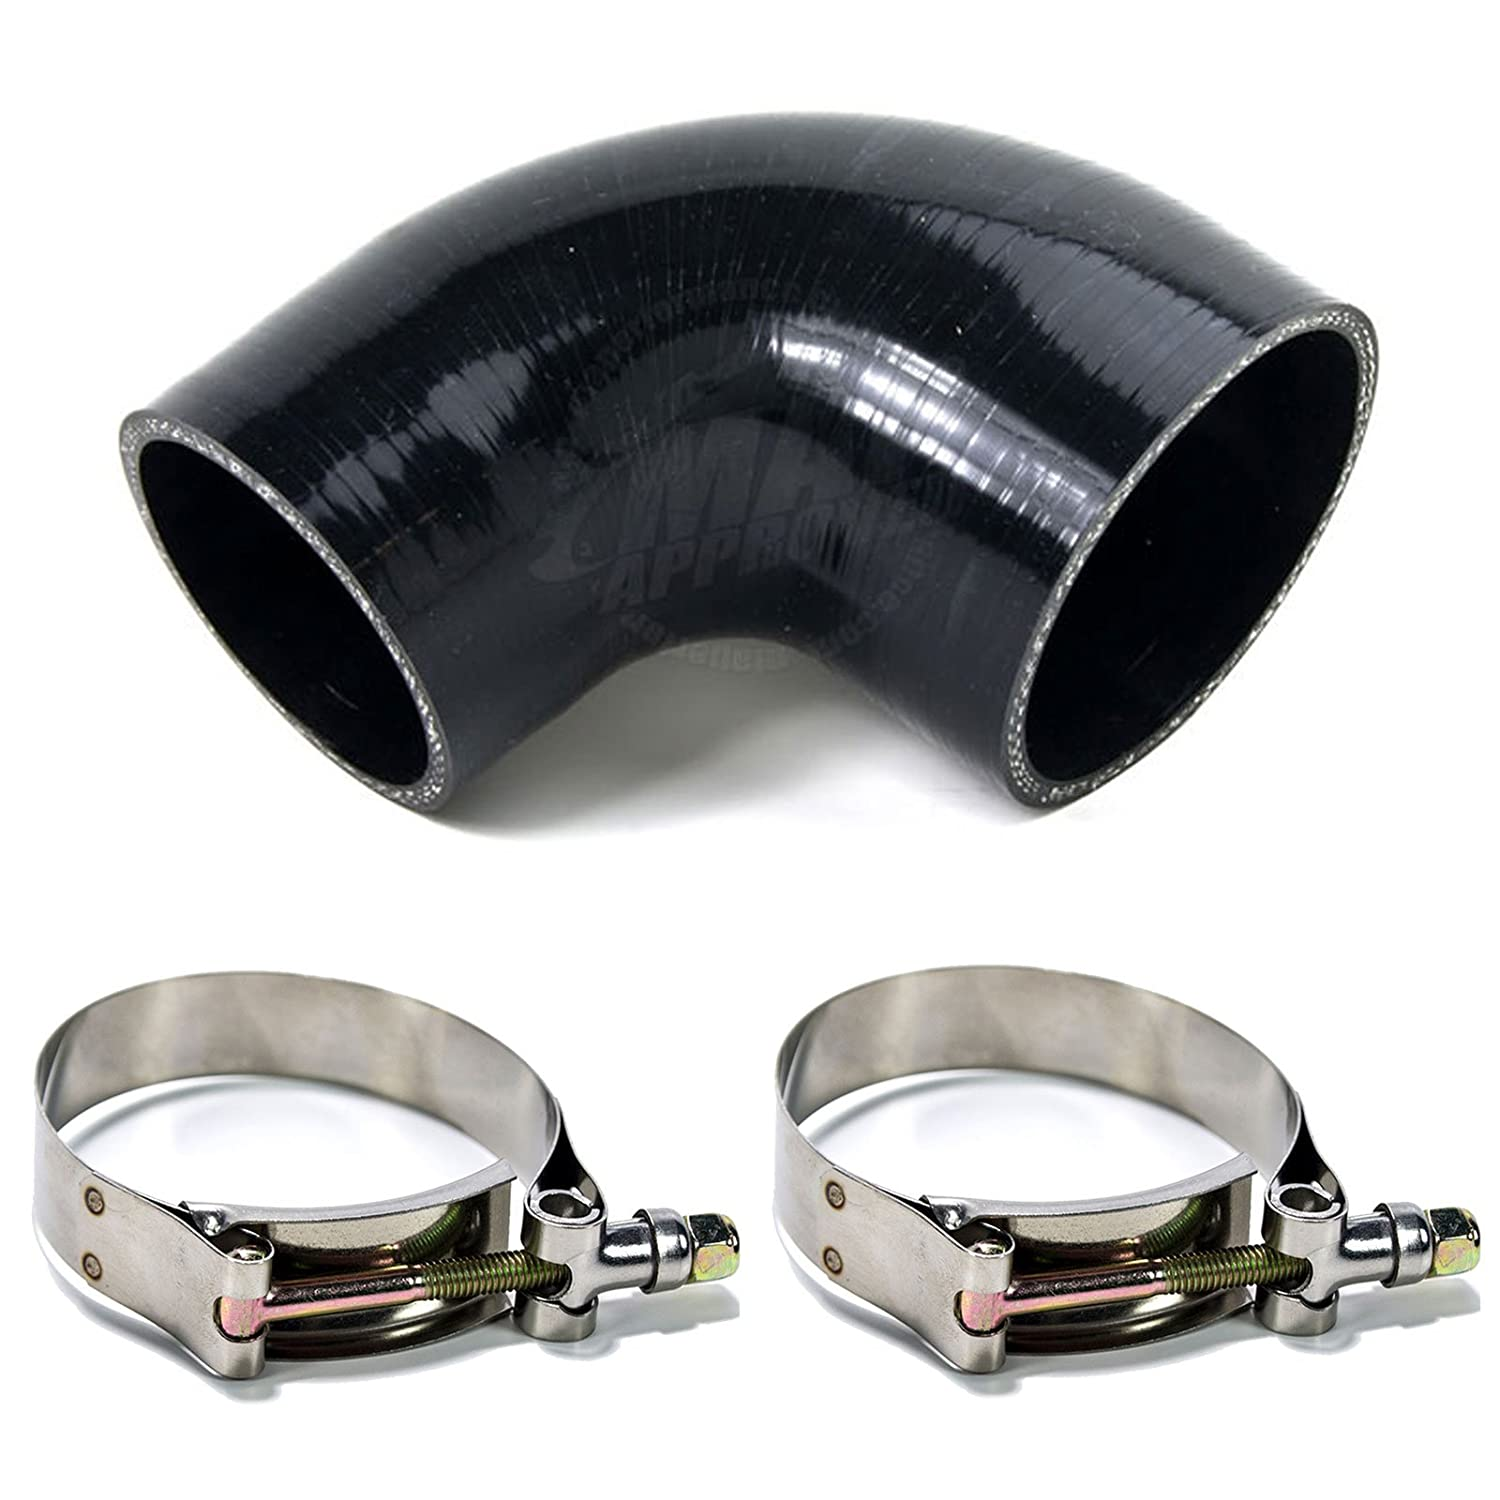 Squirrelly 2.5' to 2.25' inch Black Silicone Reducer Coupler 90 Degree w/ 2x T-Bolt Clamps Squirrelly Performance Parts